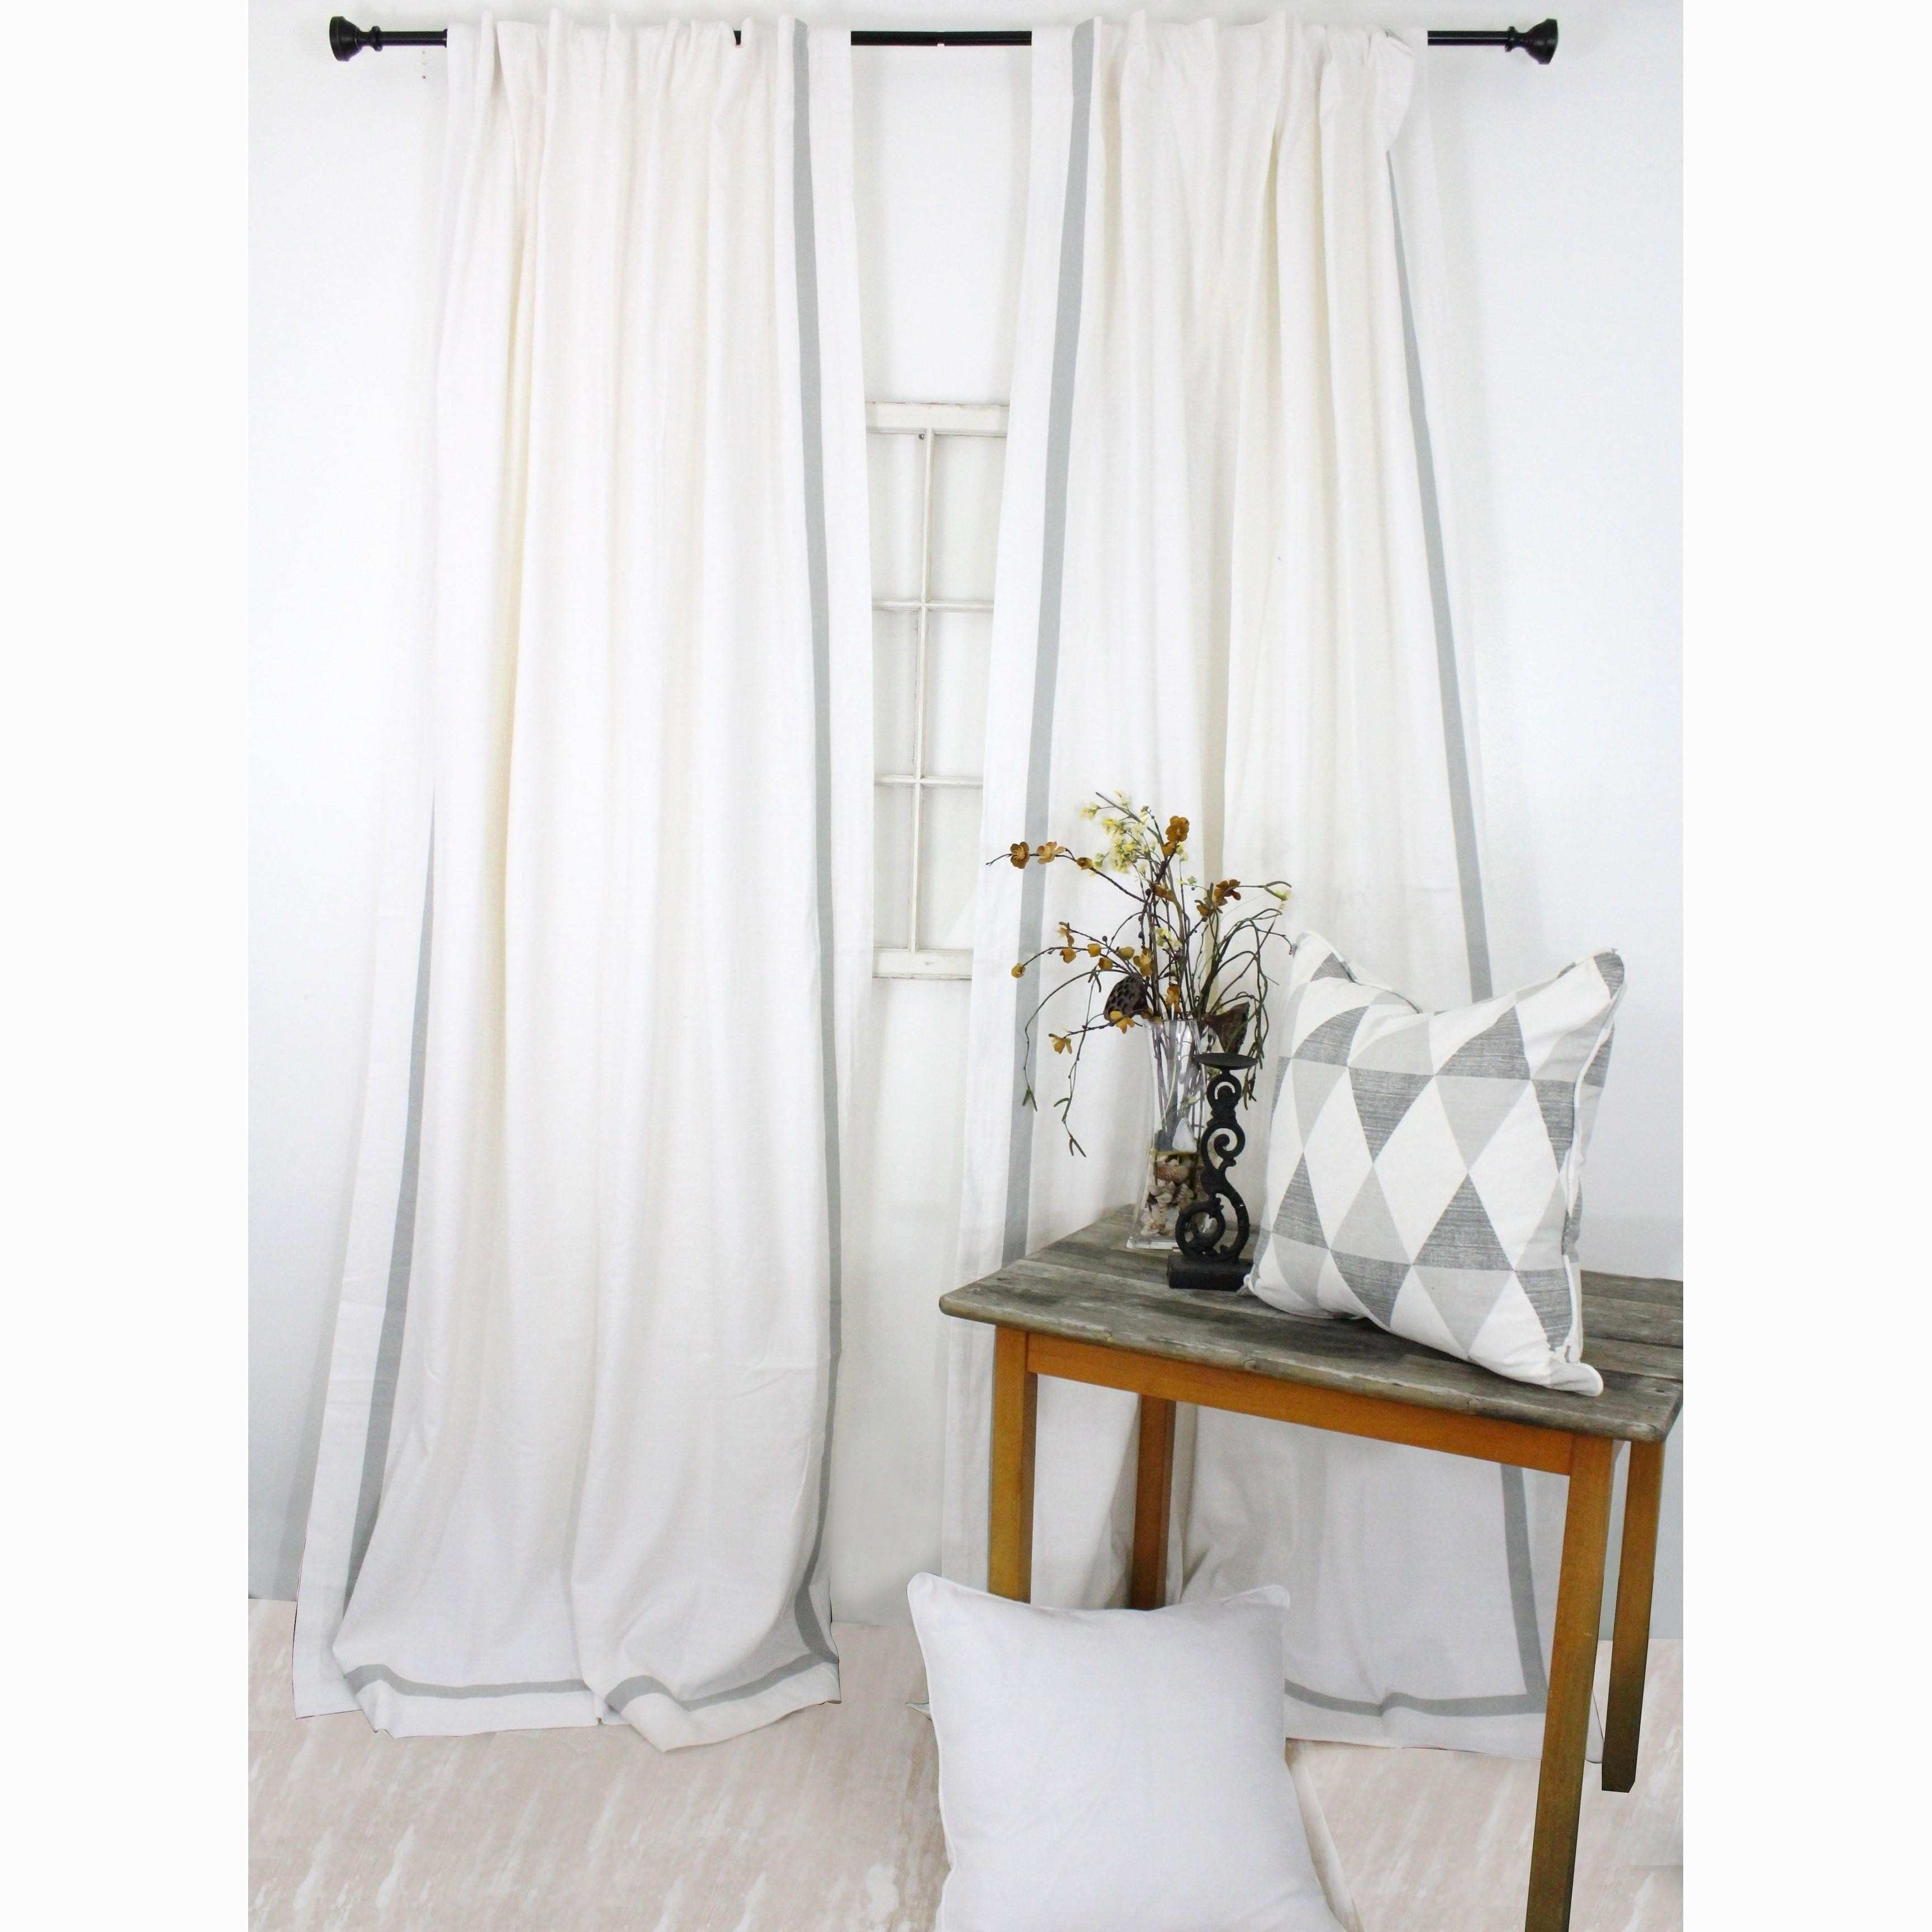 25 New Extra Tall Shower Curtain